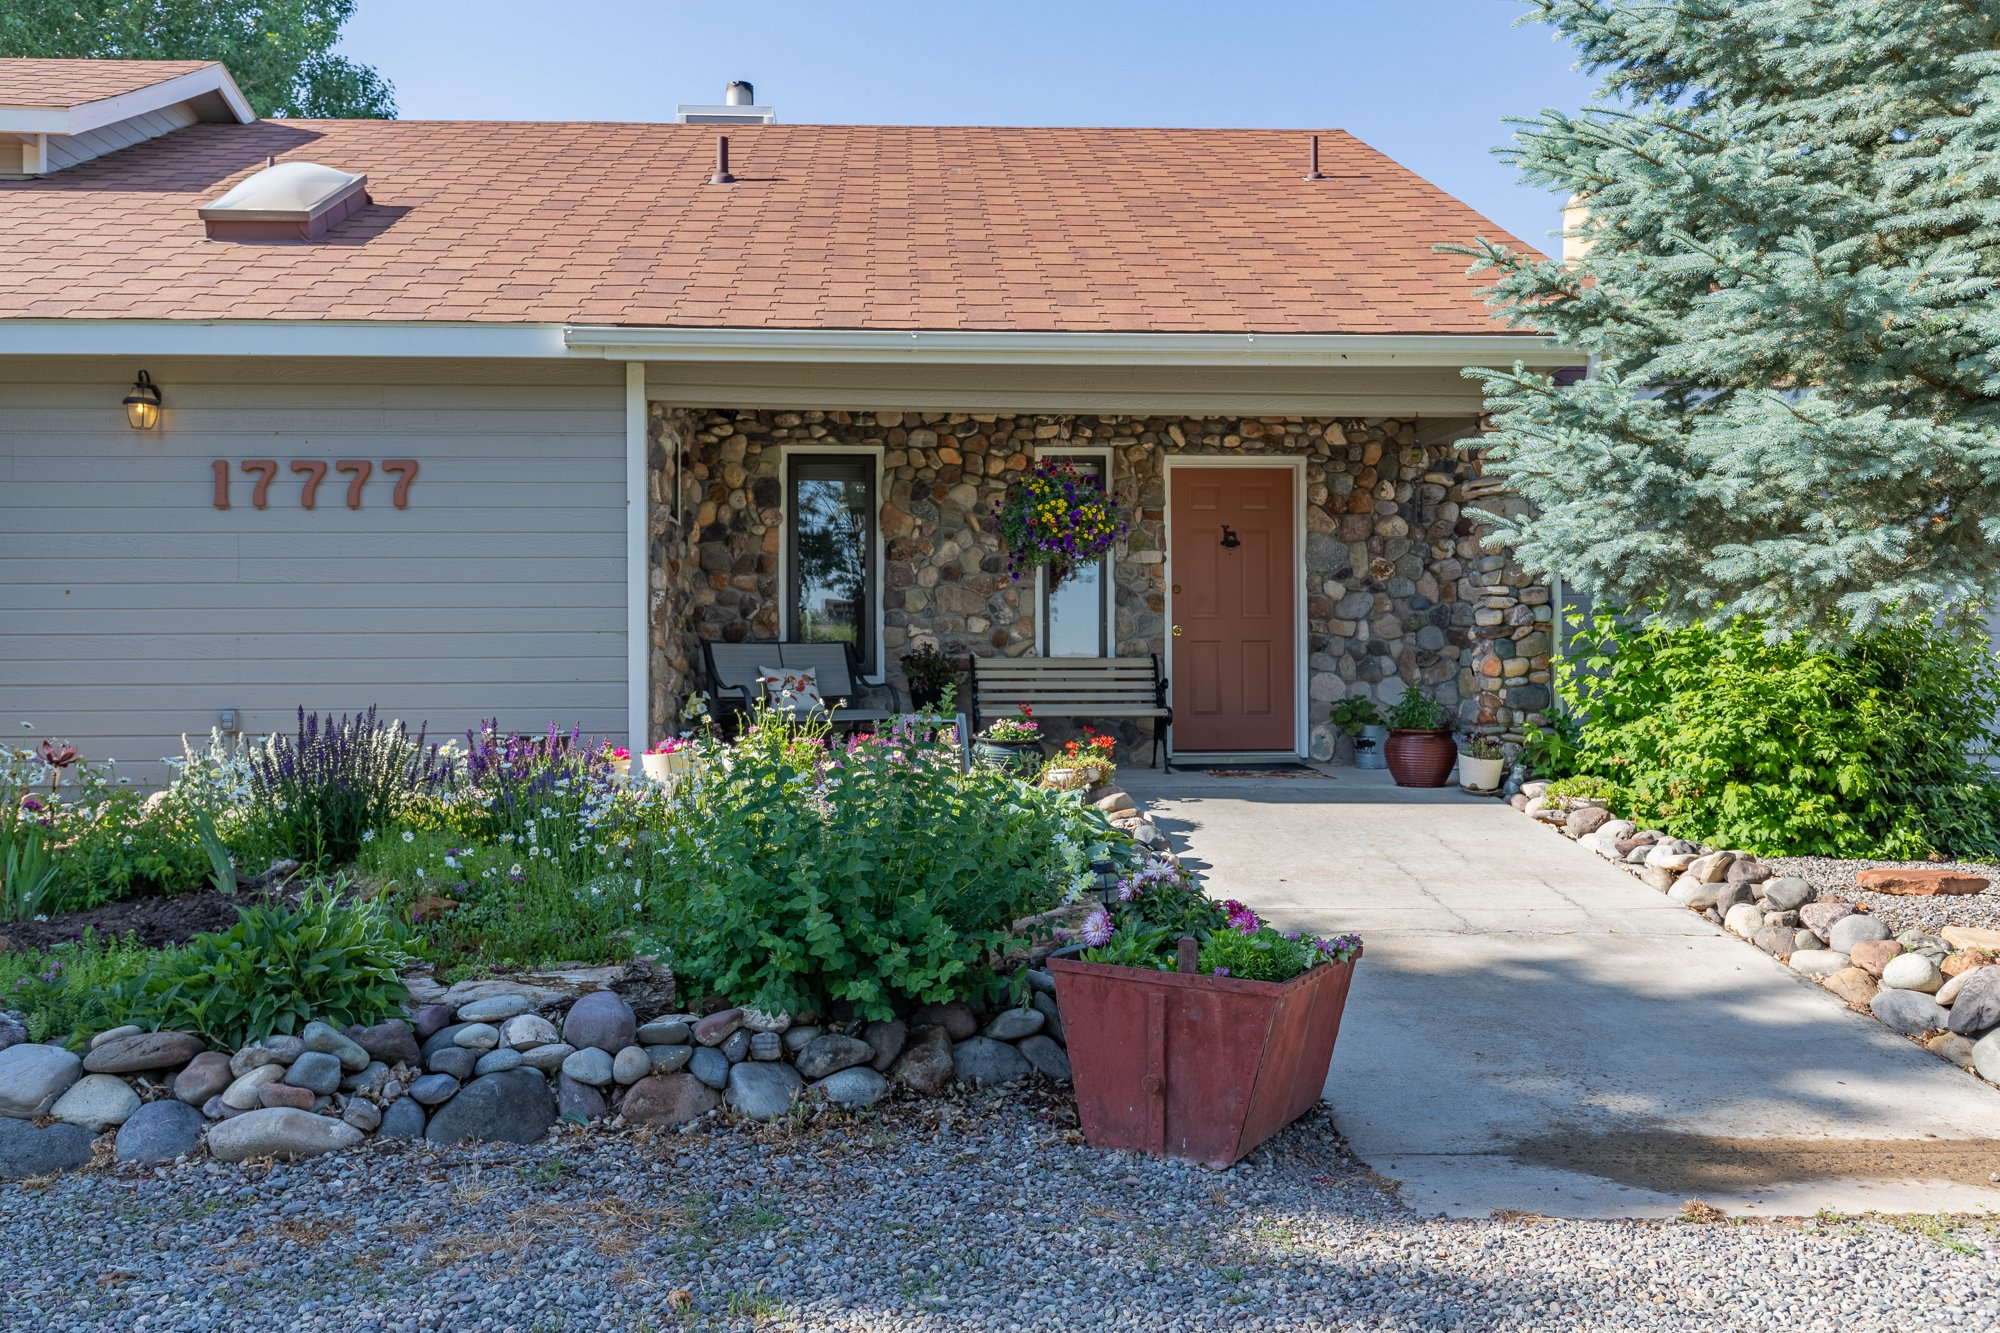 Covered Front Porch - 17777 6650 Rd Montrose, CO 81403 - Atha Team Country Real Estate